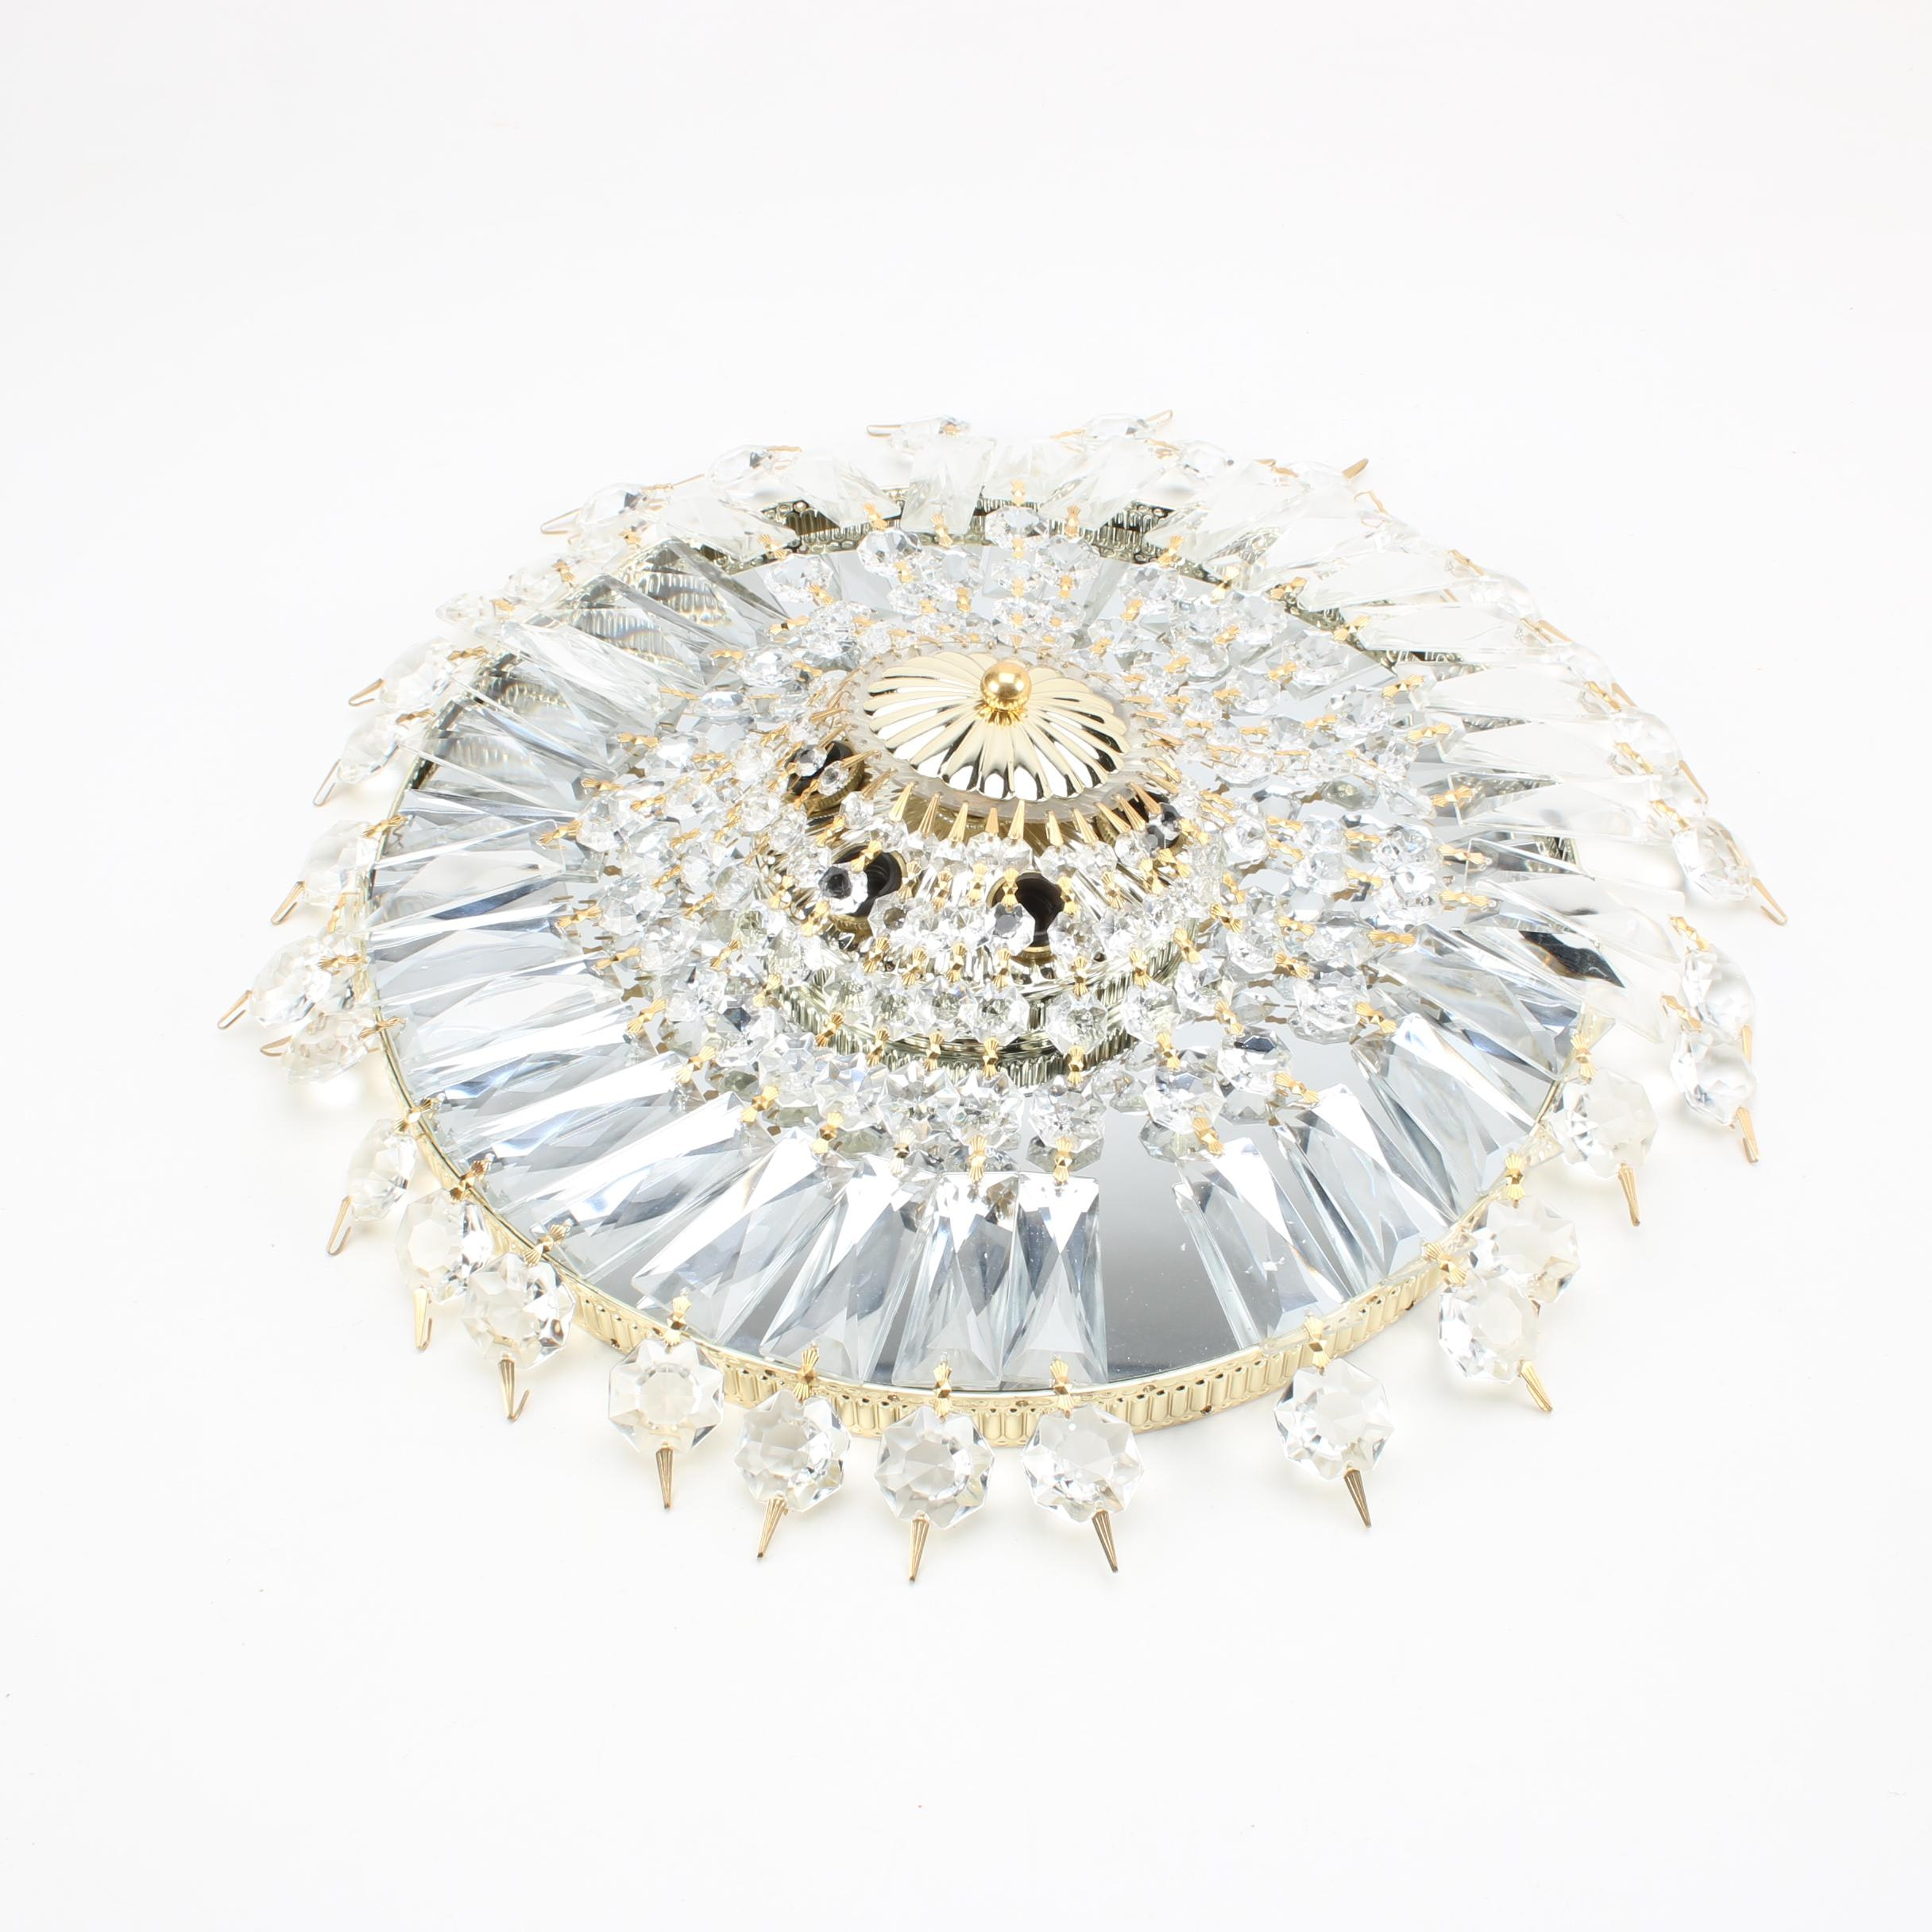 Glass Prism Chandelier Fixture